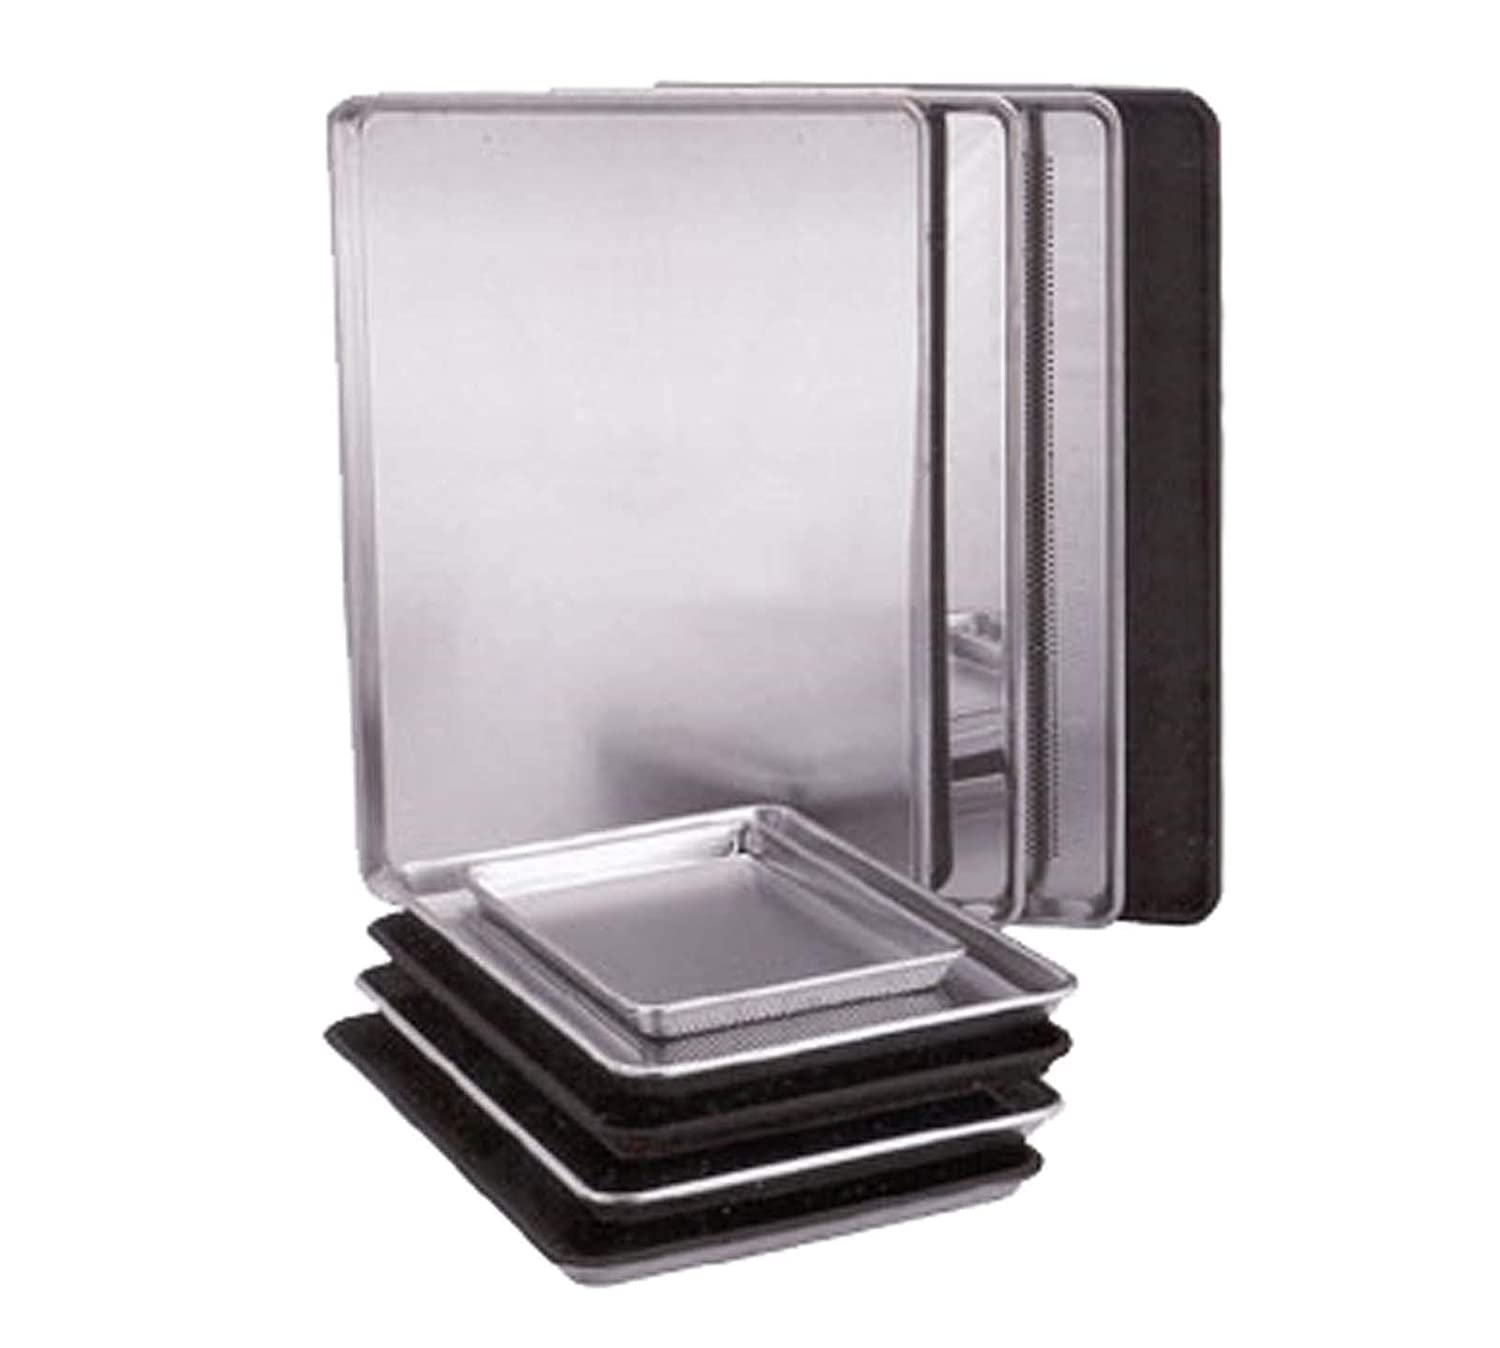 Vollrath (9001) 17-3/4' x 25-3/4' Full-Size Sheet Pan – 16 Gauge - Wear-Ever